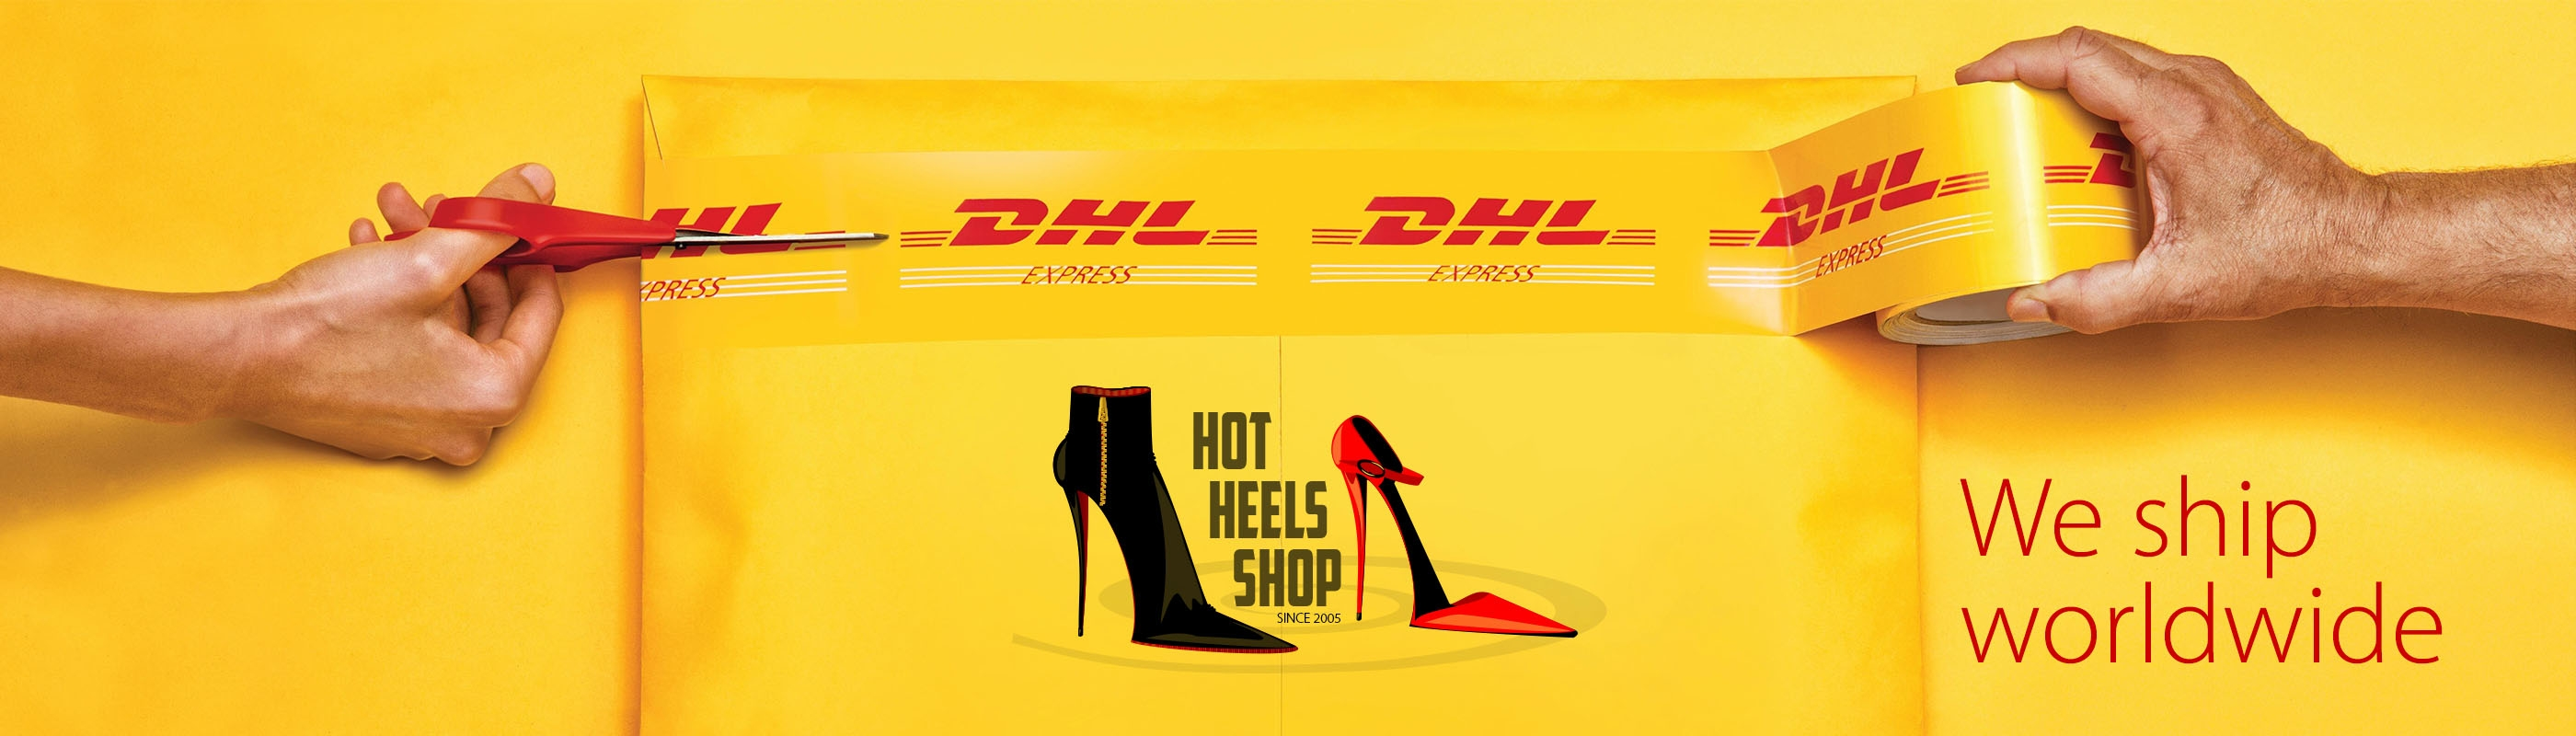 Hot Heels Shop shoes worldwide shipping